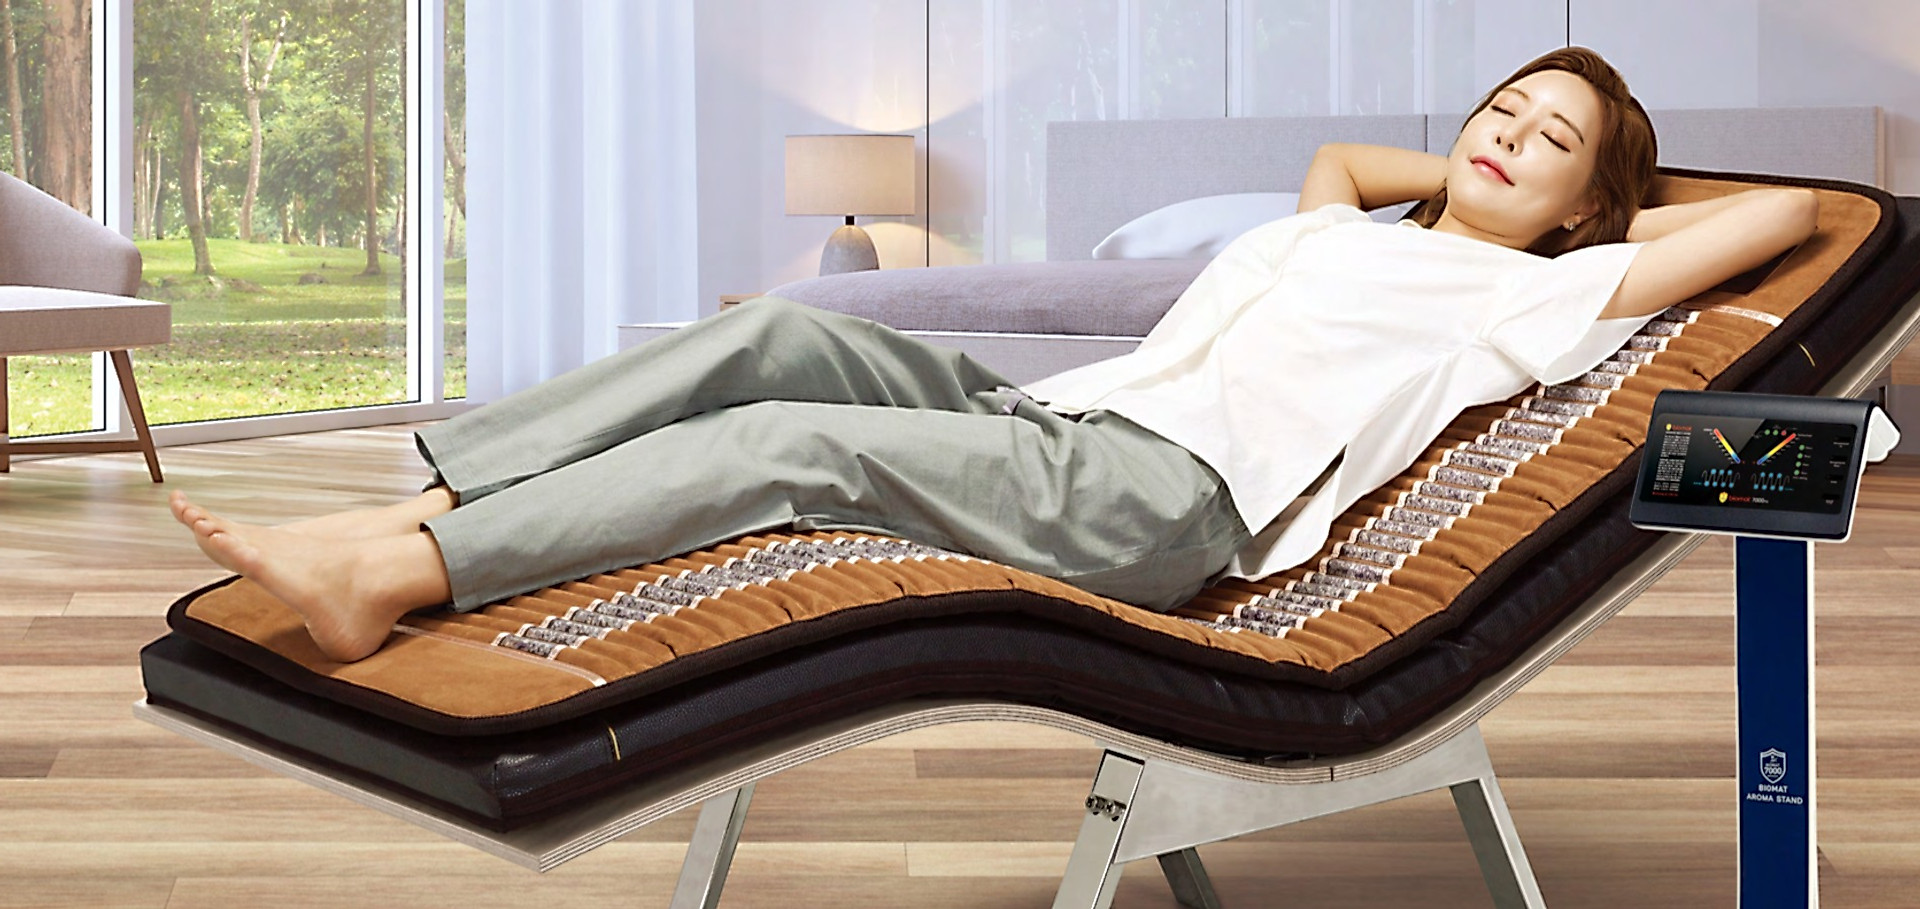 The BioAcoustic Mat by Richway